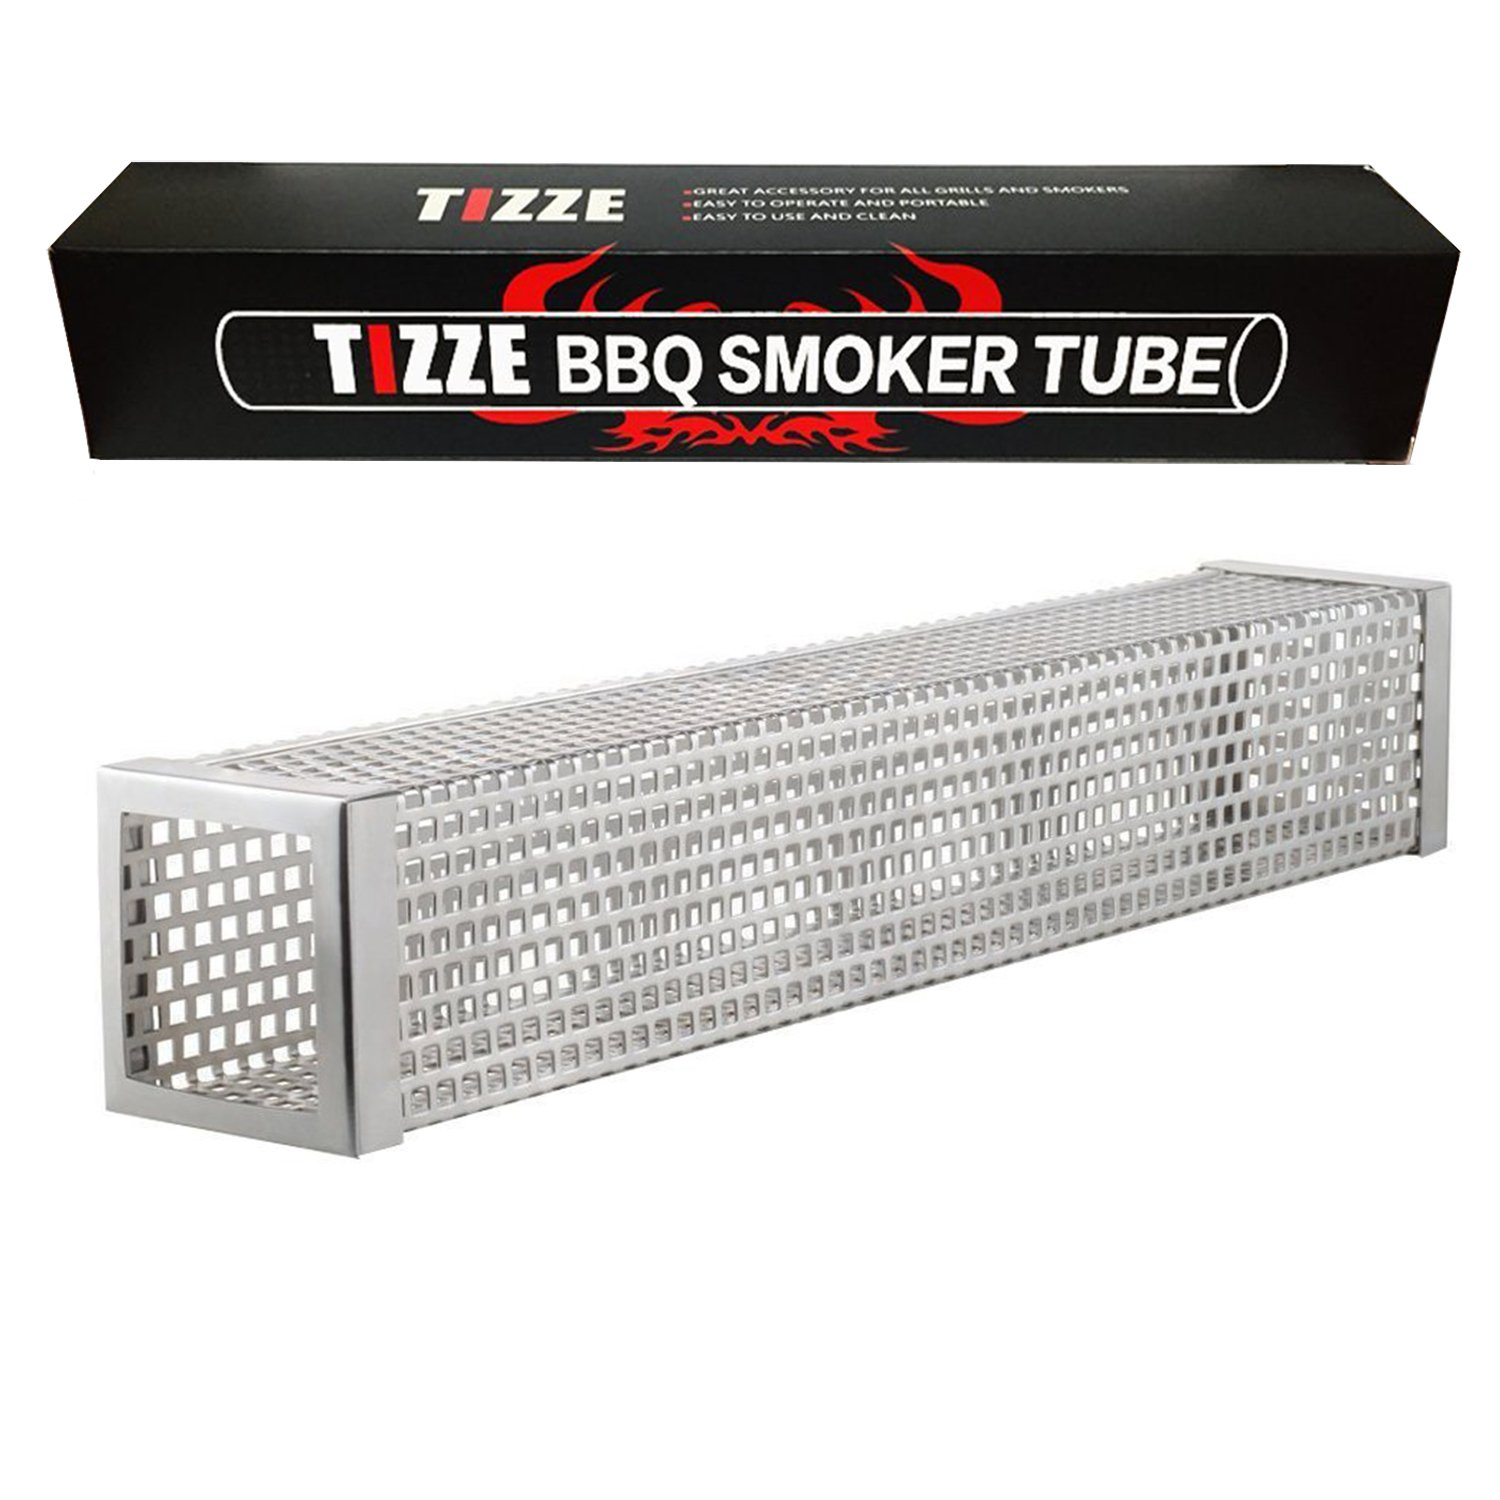 TIZZE 12 inches BBQ Pellet Smoker Tube for Any Grill or Smoker, Hot or Cold Smoking - Easy, Safety and Tasty Smoking by TIZZE